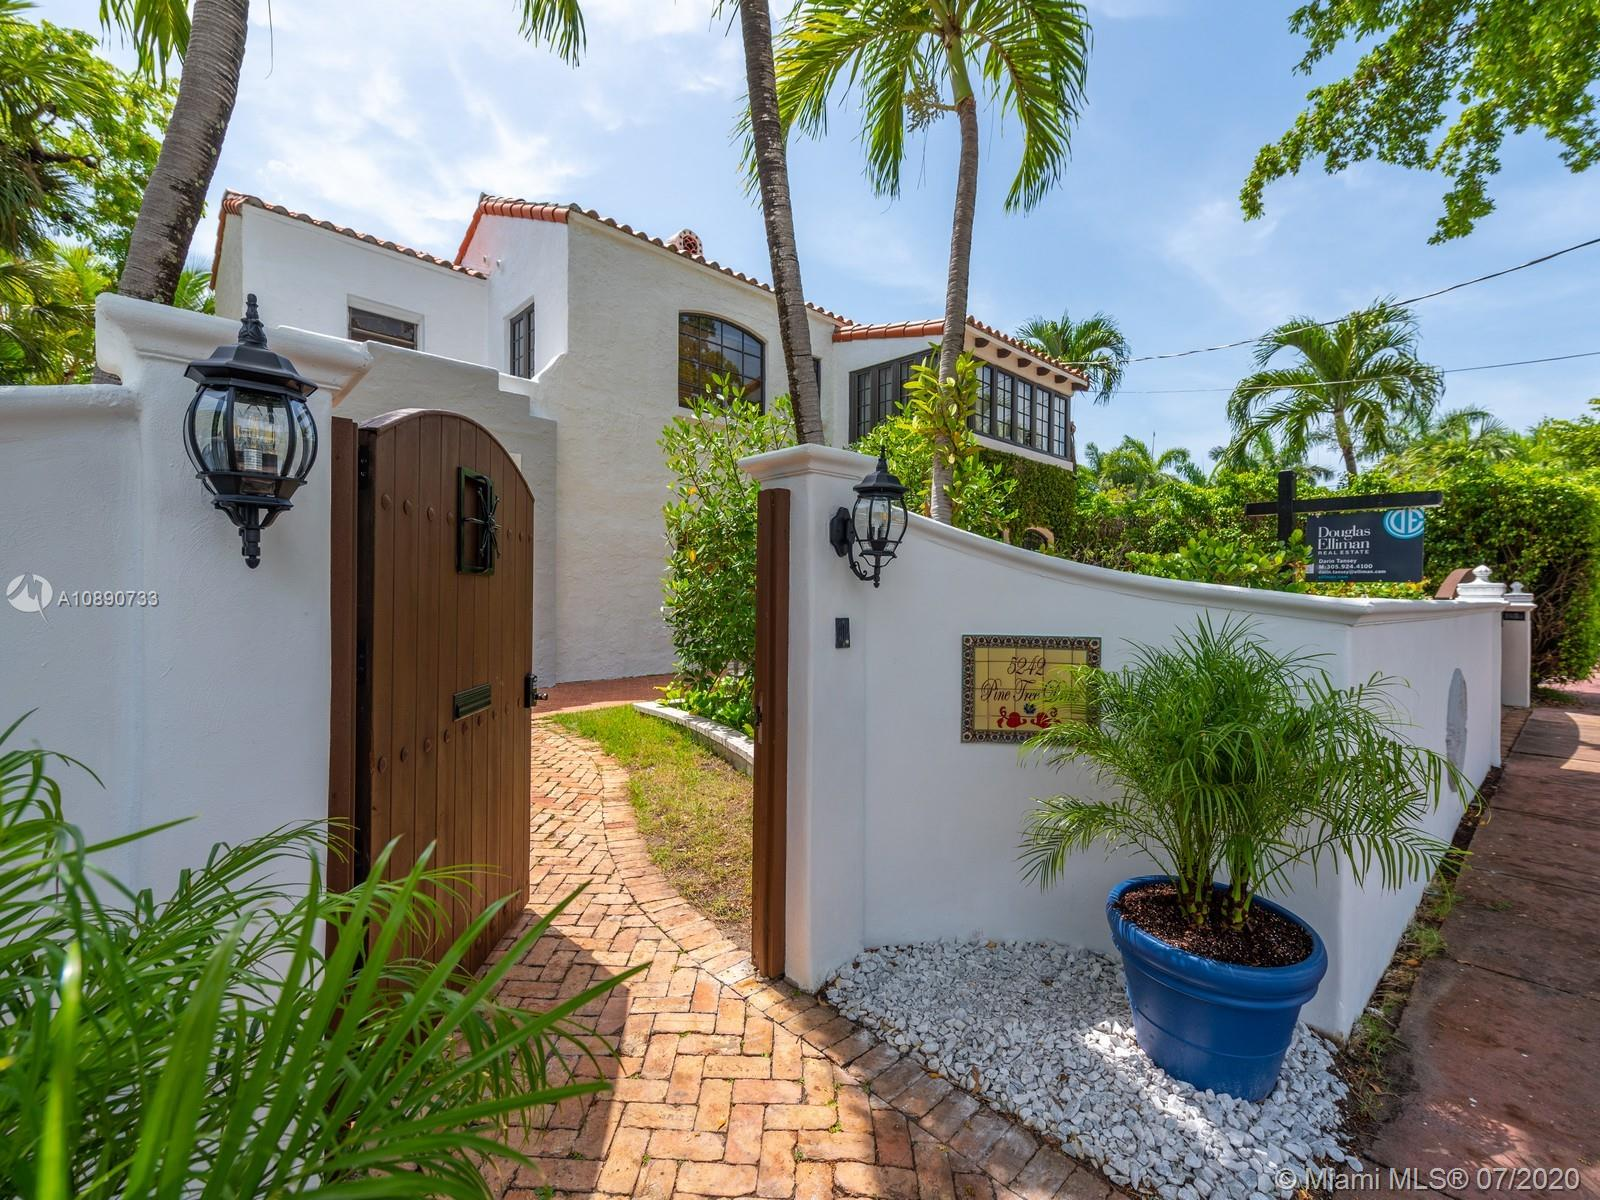 5242  Pine Tree Dr  For Sale A10890733, FL